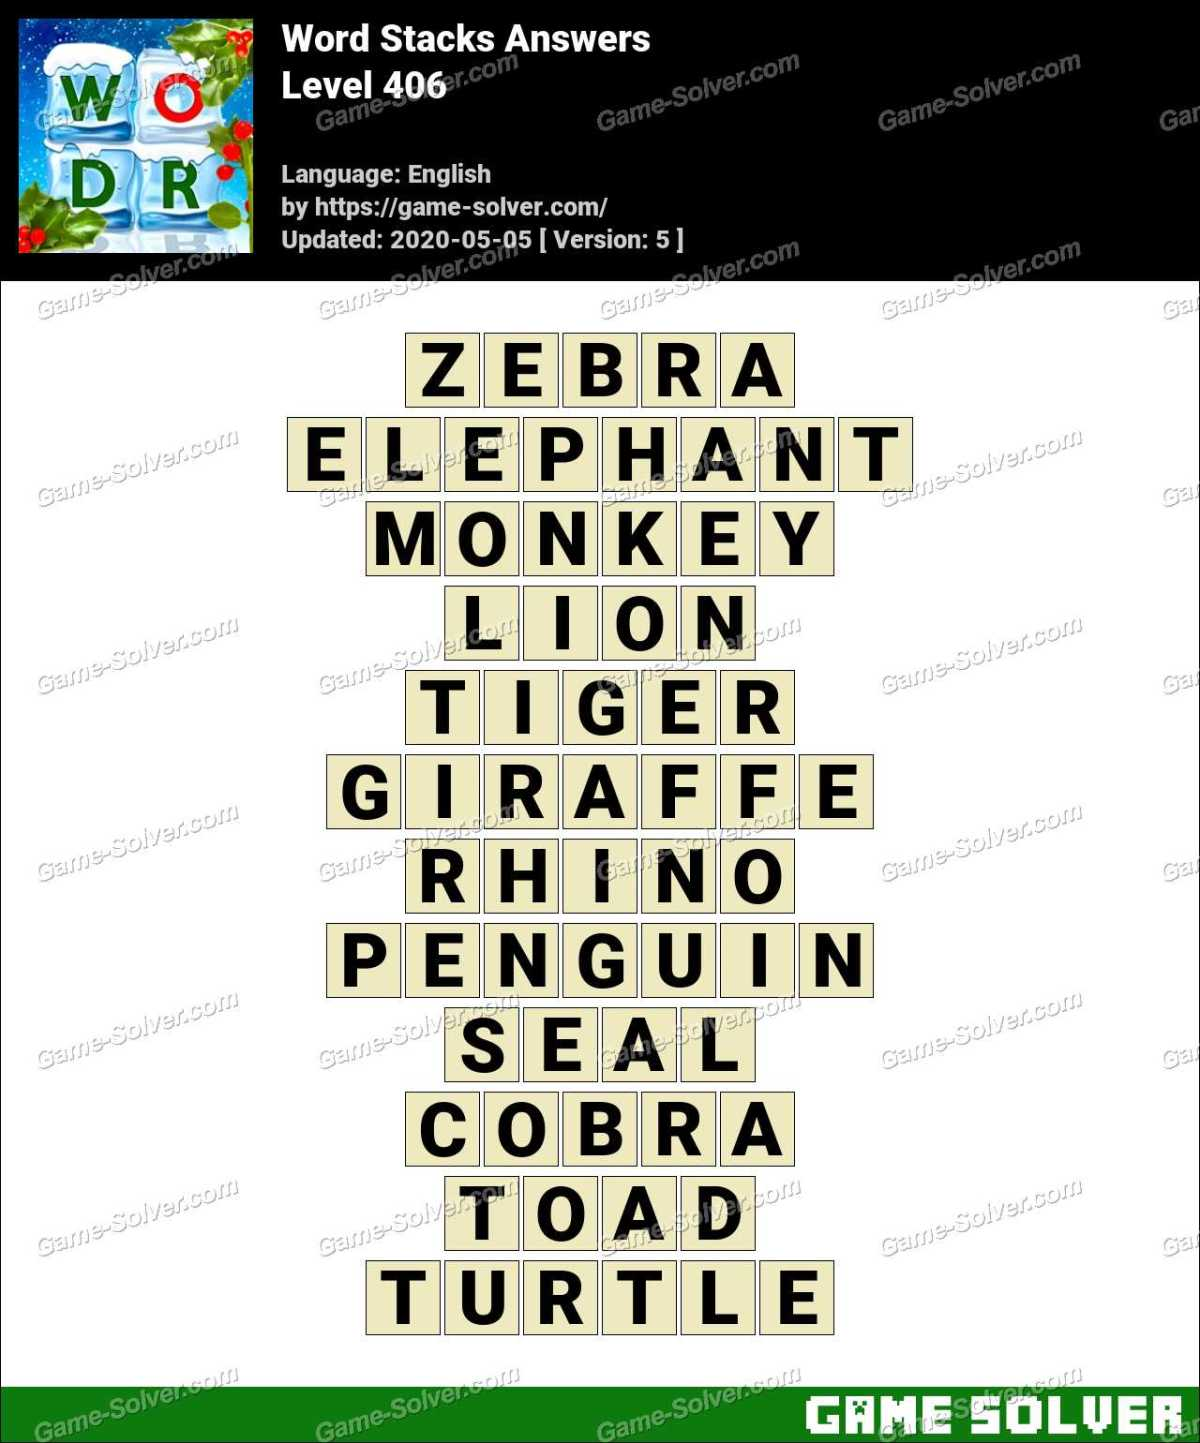 Word Stacks Level 406 Answers